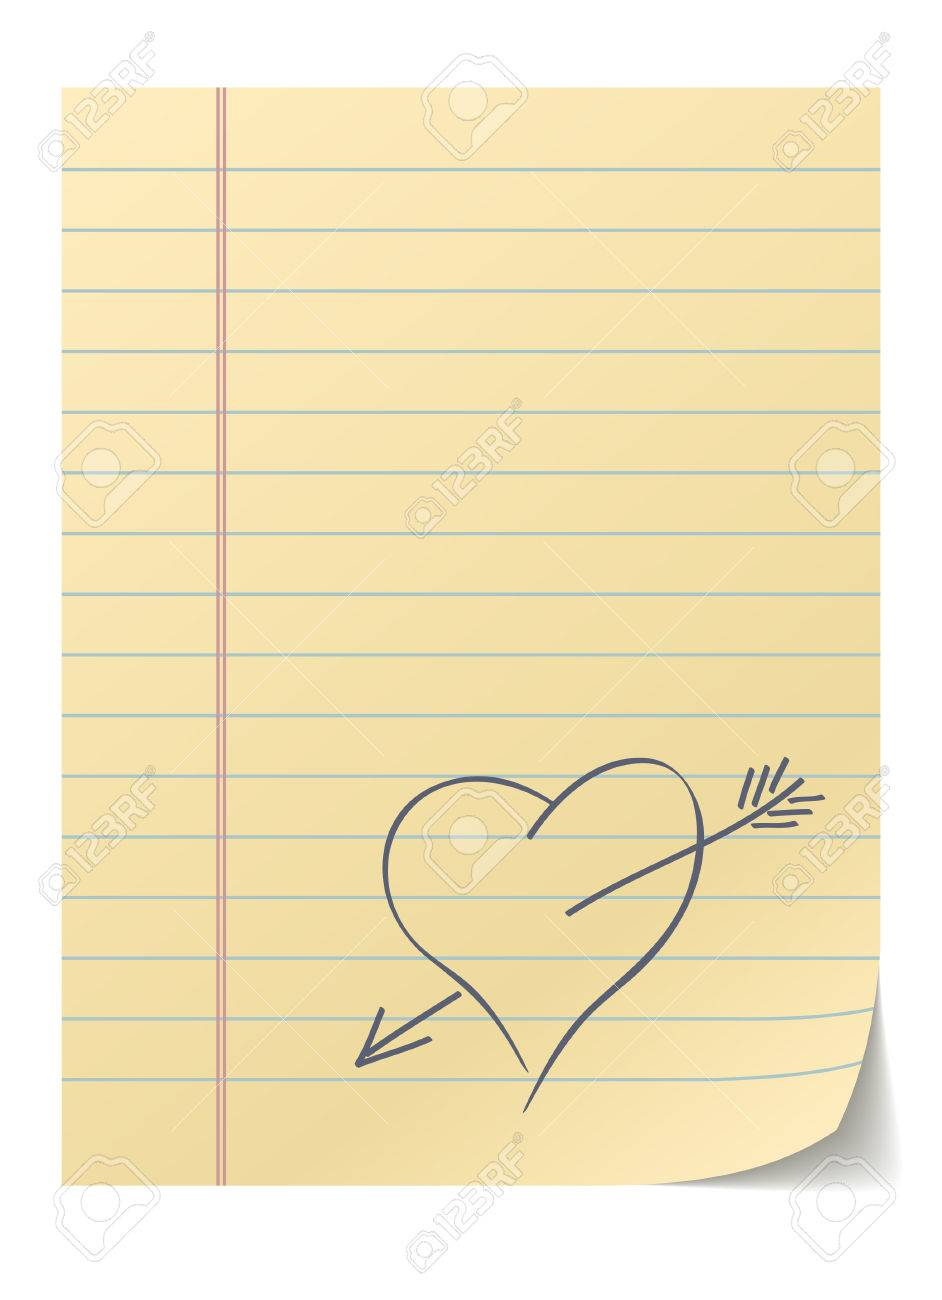 Blank Lined Page With Hand Drawn Heart Love Message Royalty – Blank Lined Page